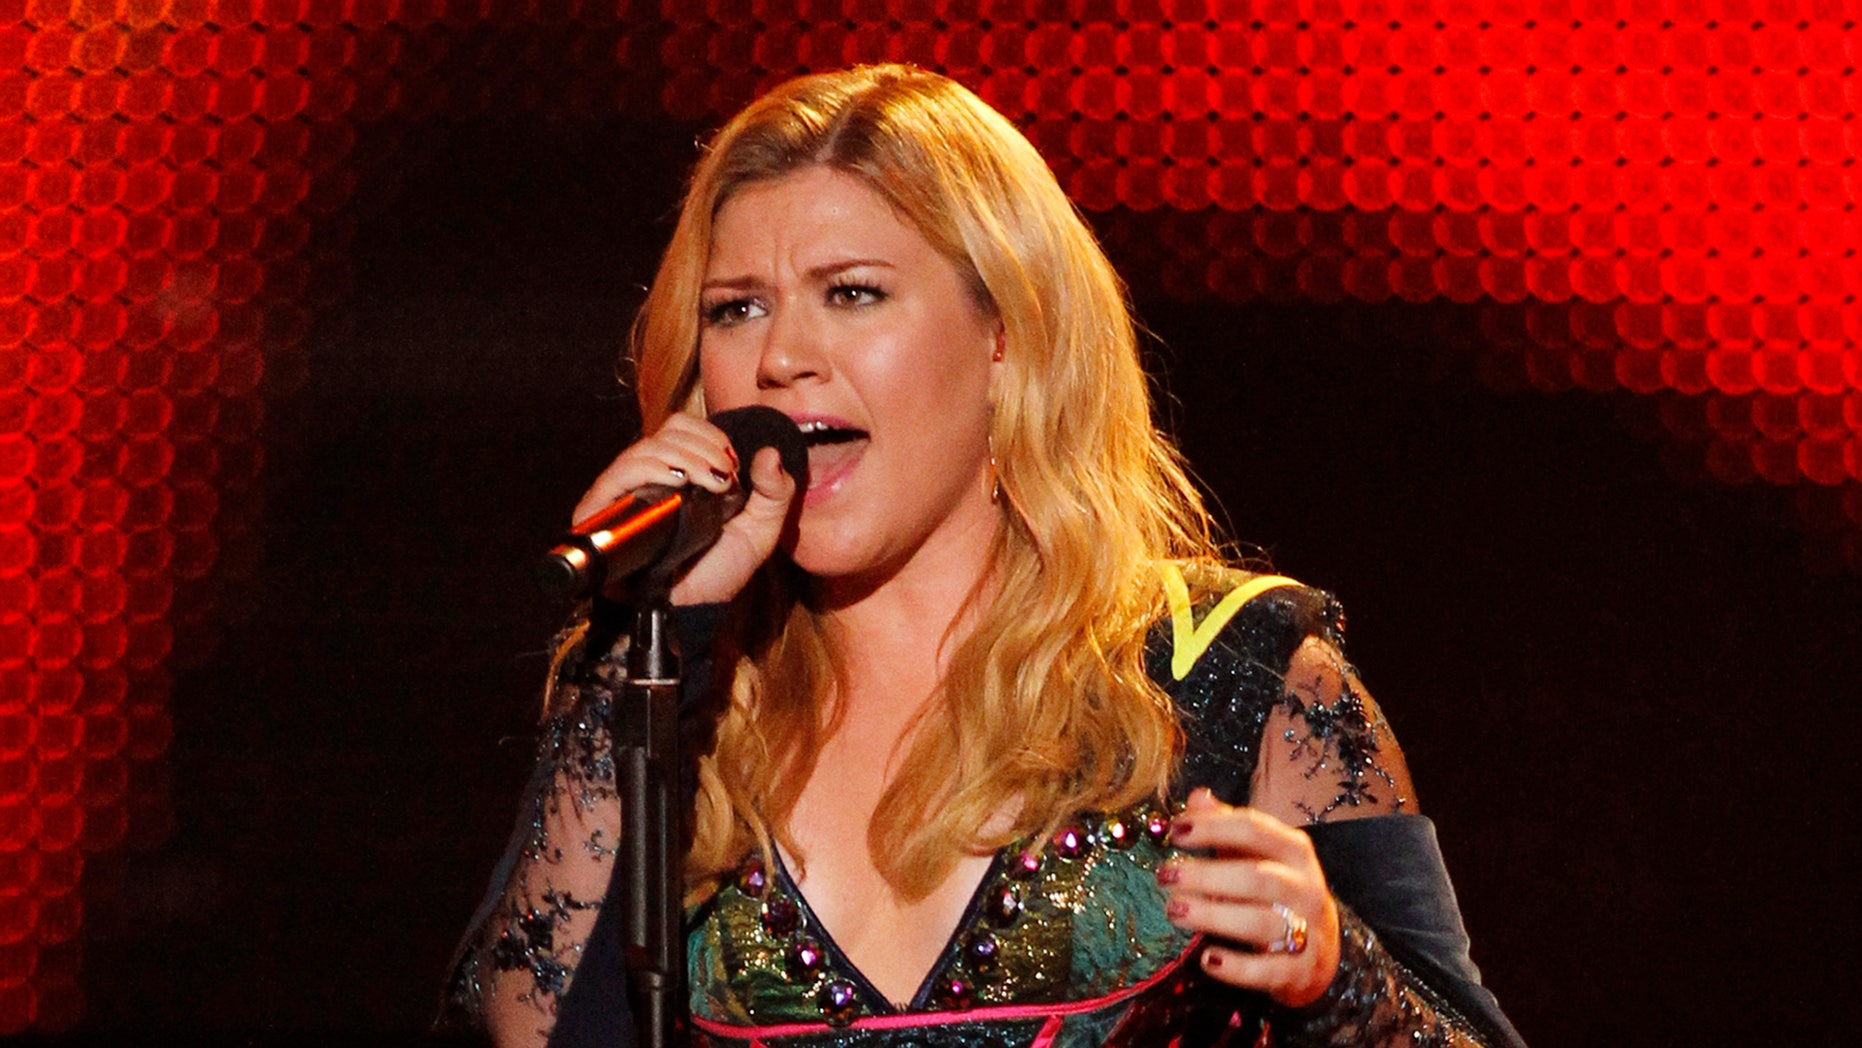 December 16, 2012. Kelly Clarkson performs at the VH1 Divas 2012 show in Los Angeles.